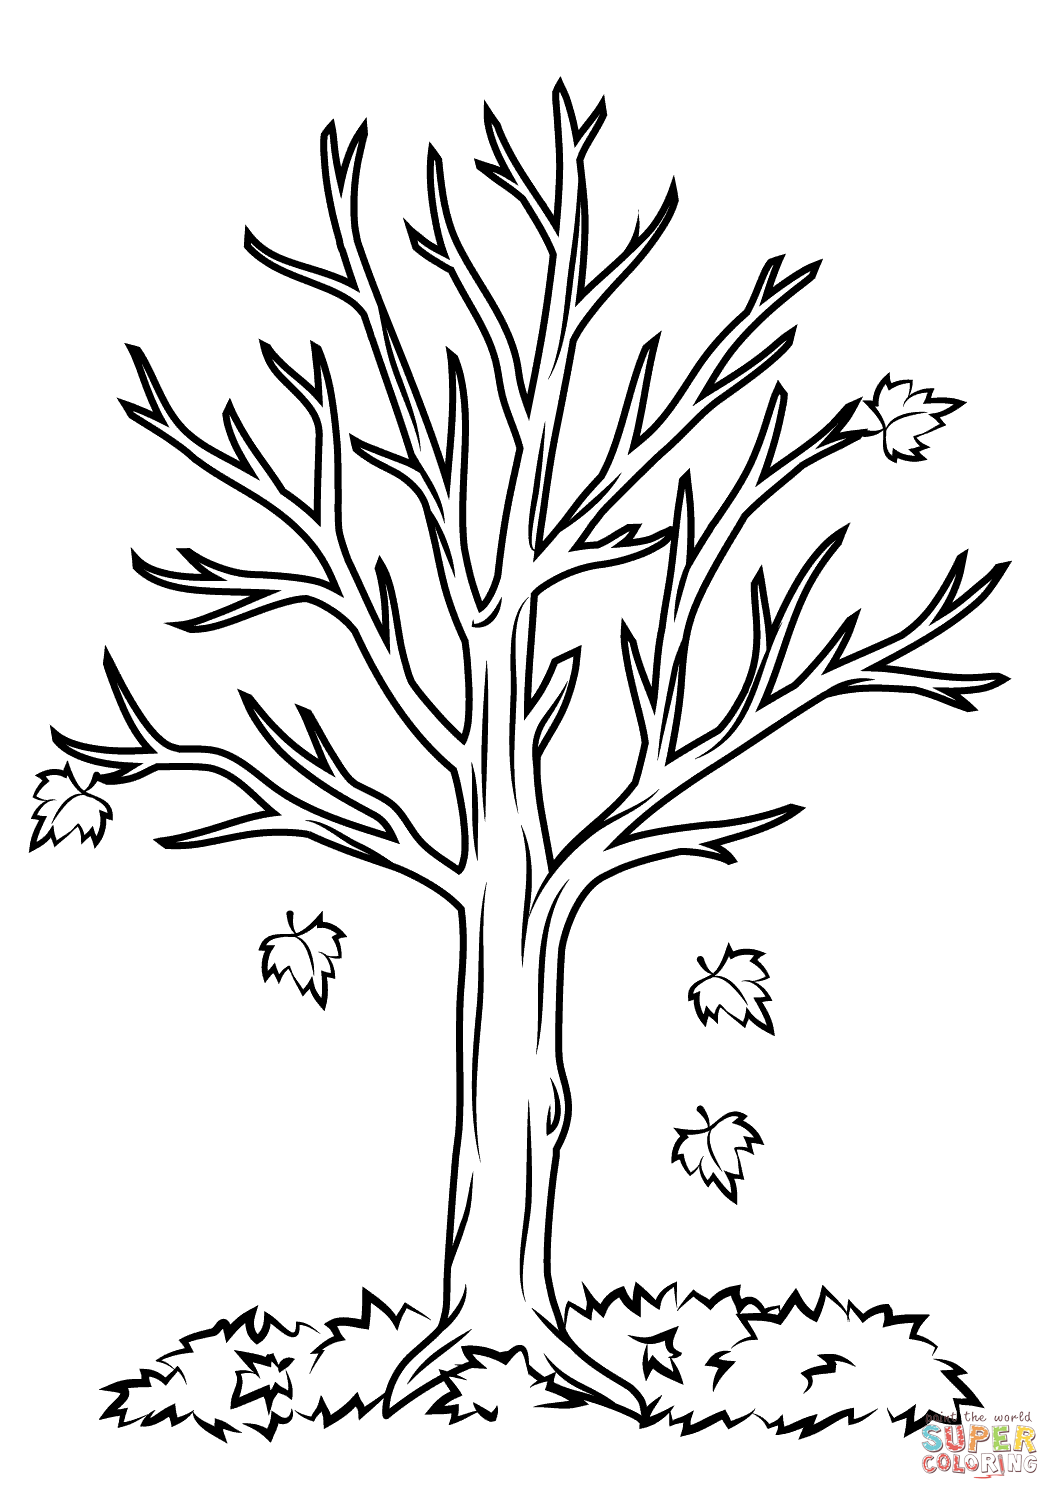 1060x1500 Crafty Design Ideas Tree Coloring Pages For Adults With Roots